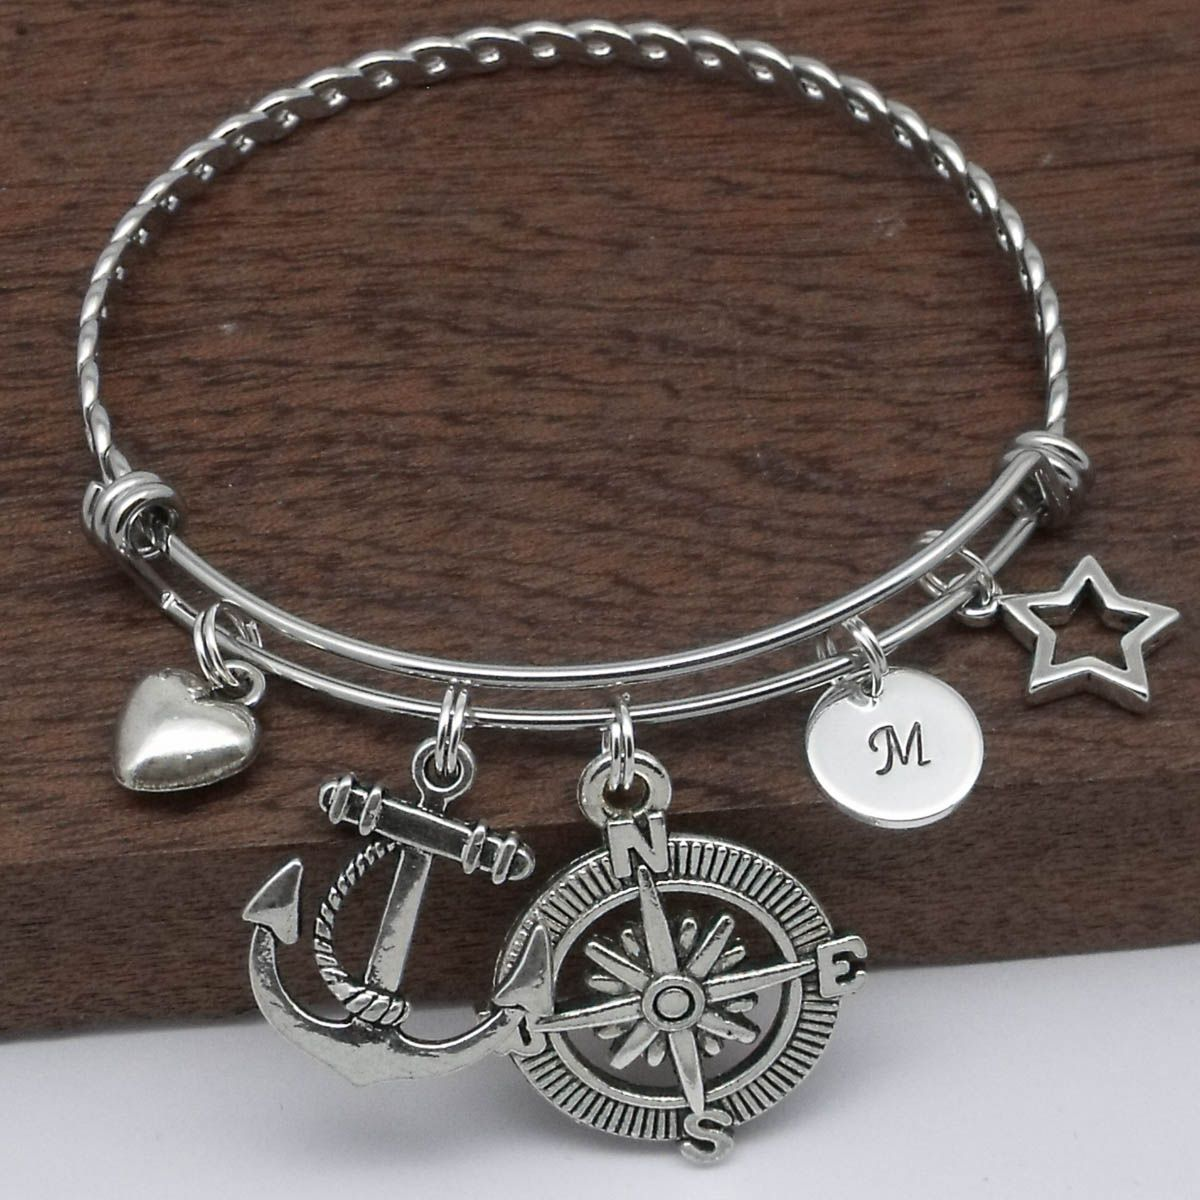 grandeur steel rose dainty mujer stainless travel men bracelet s compass femme women jewelry miss pulseras bff products gold